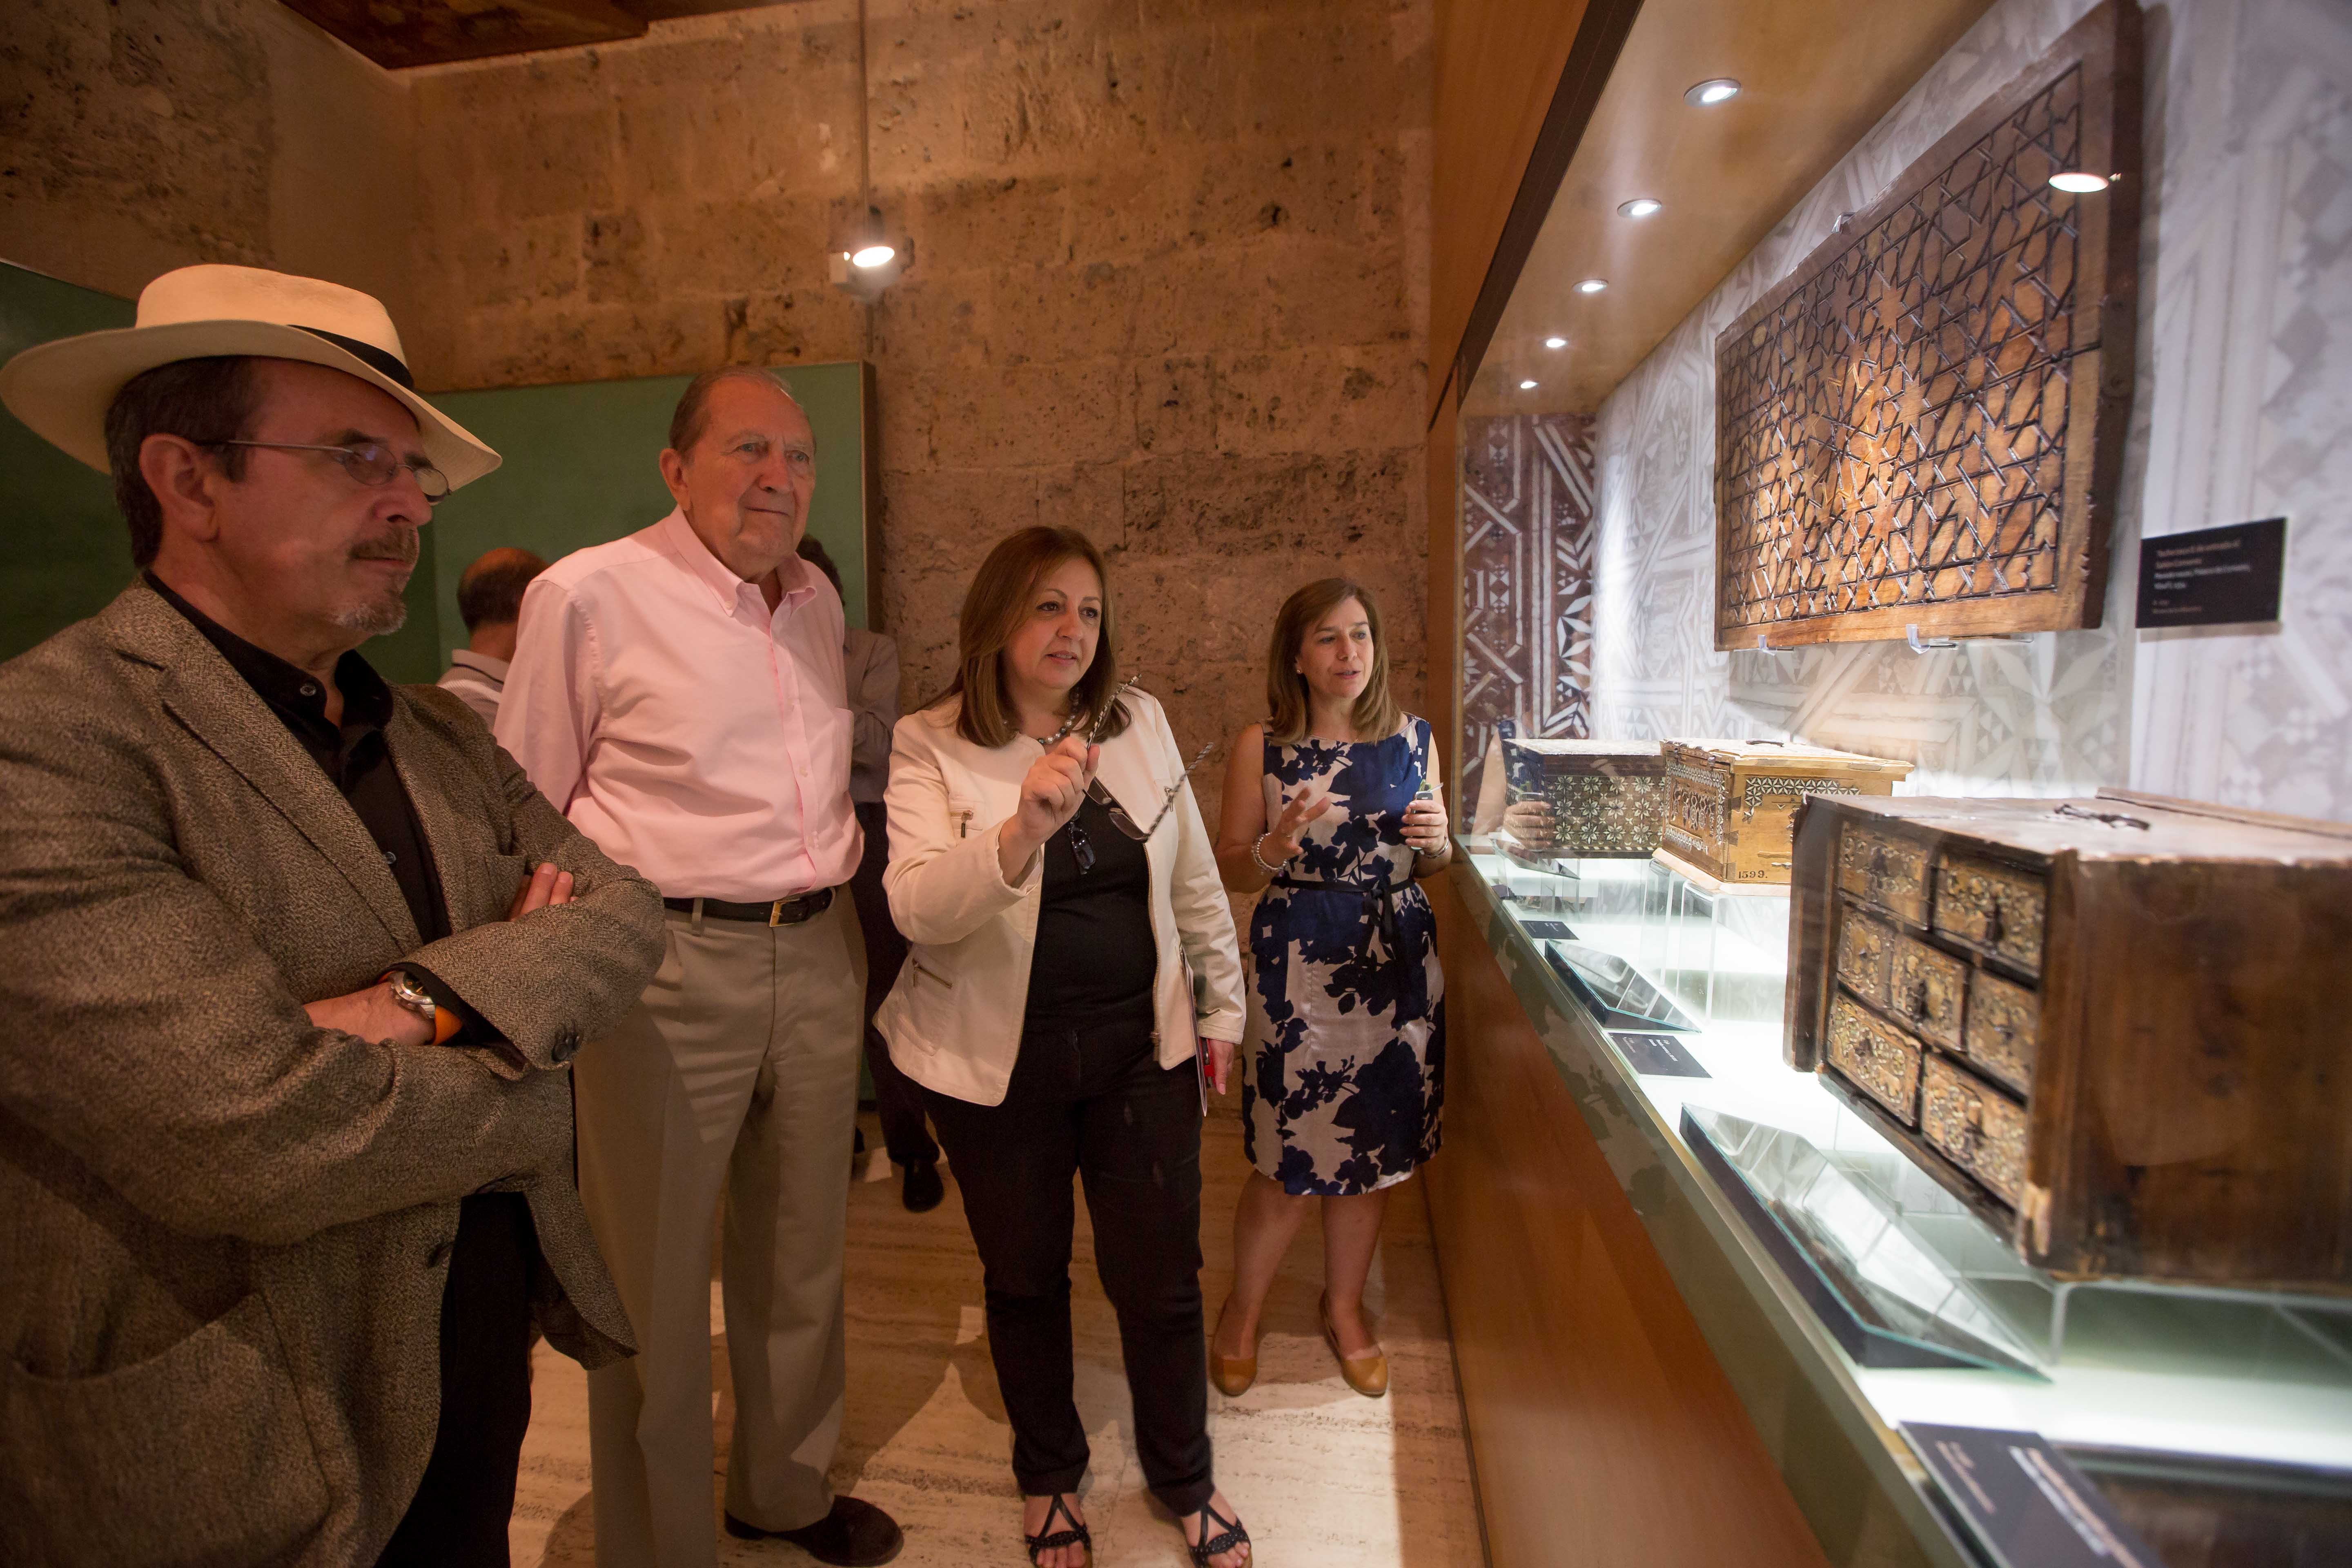 The Alhambra and the Rodríguez-Acosta Foundation are organising activities for all the family on International Museum Day